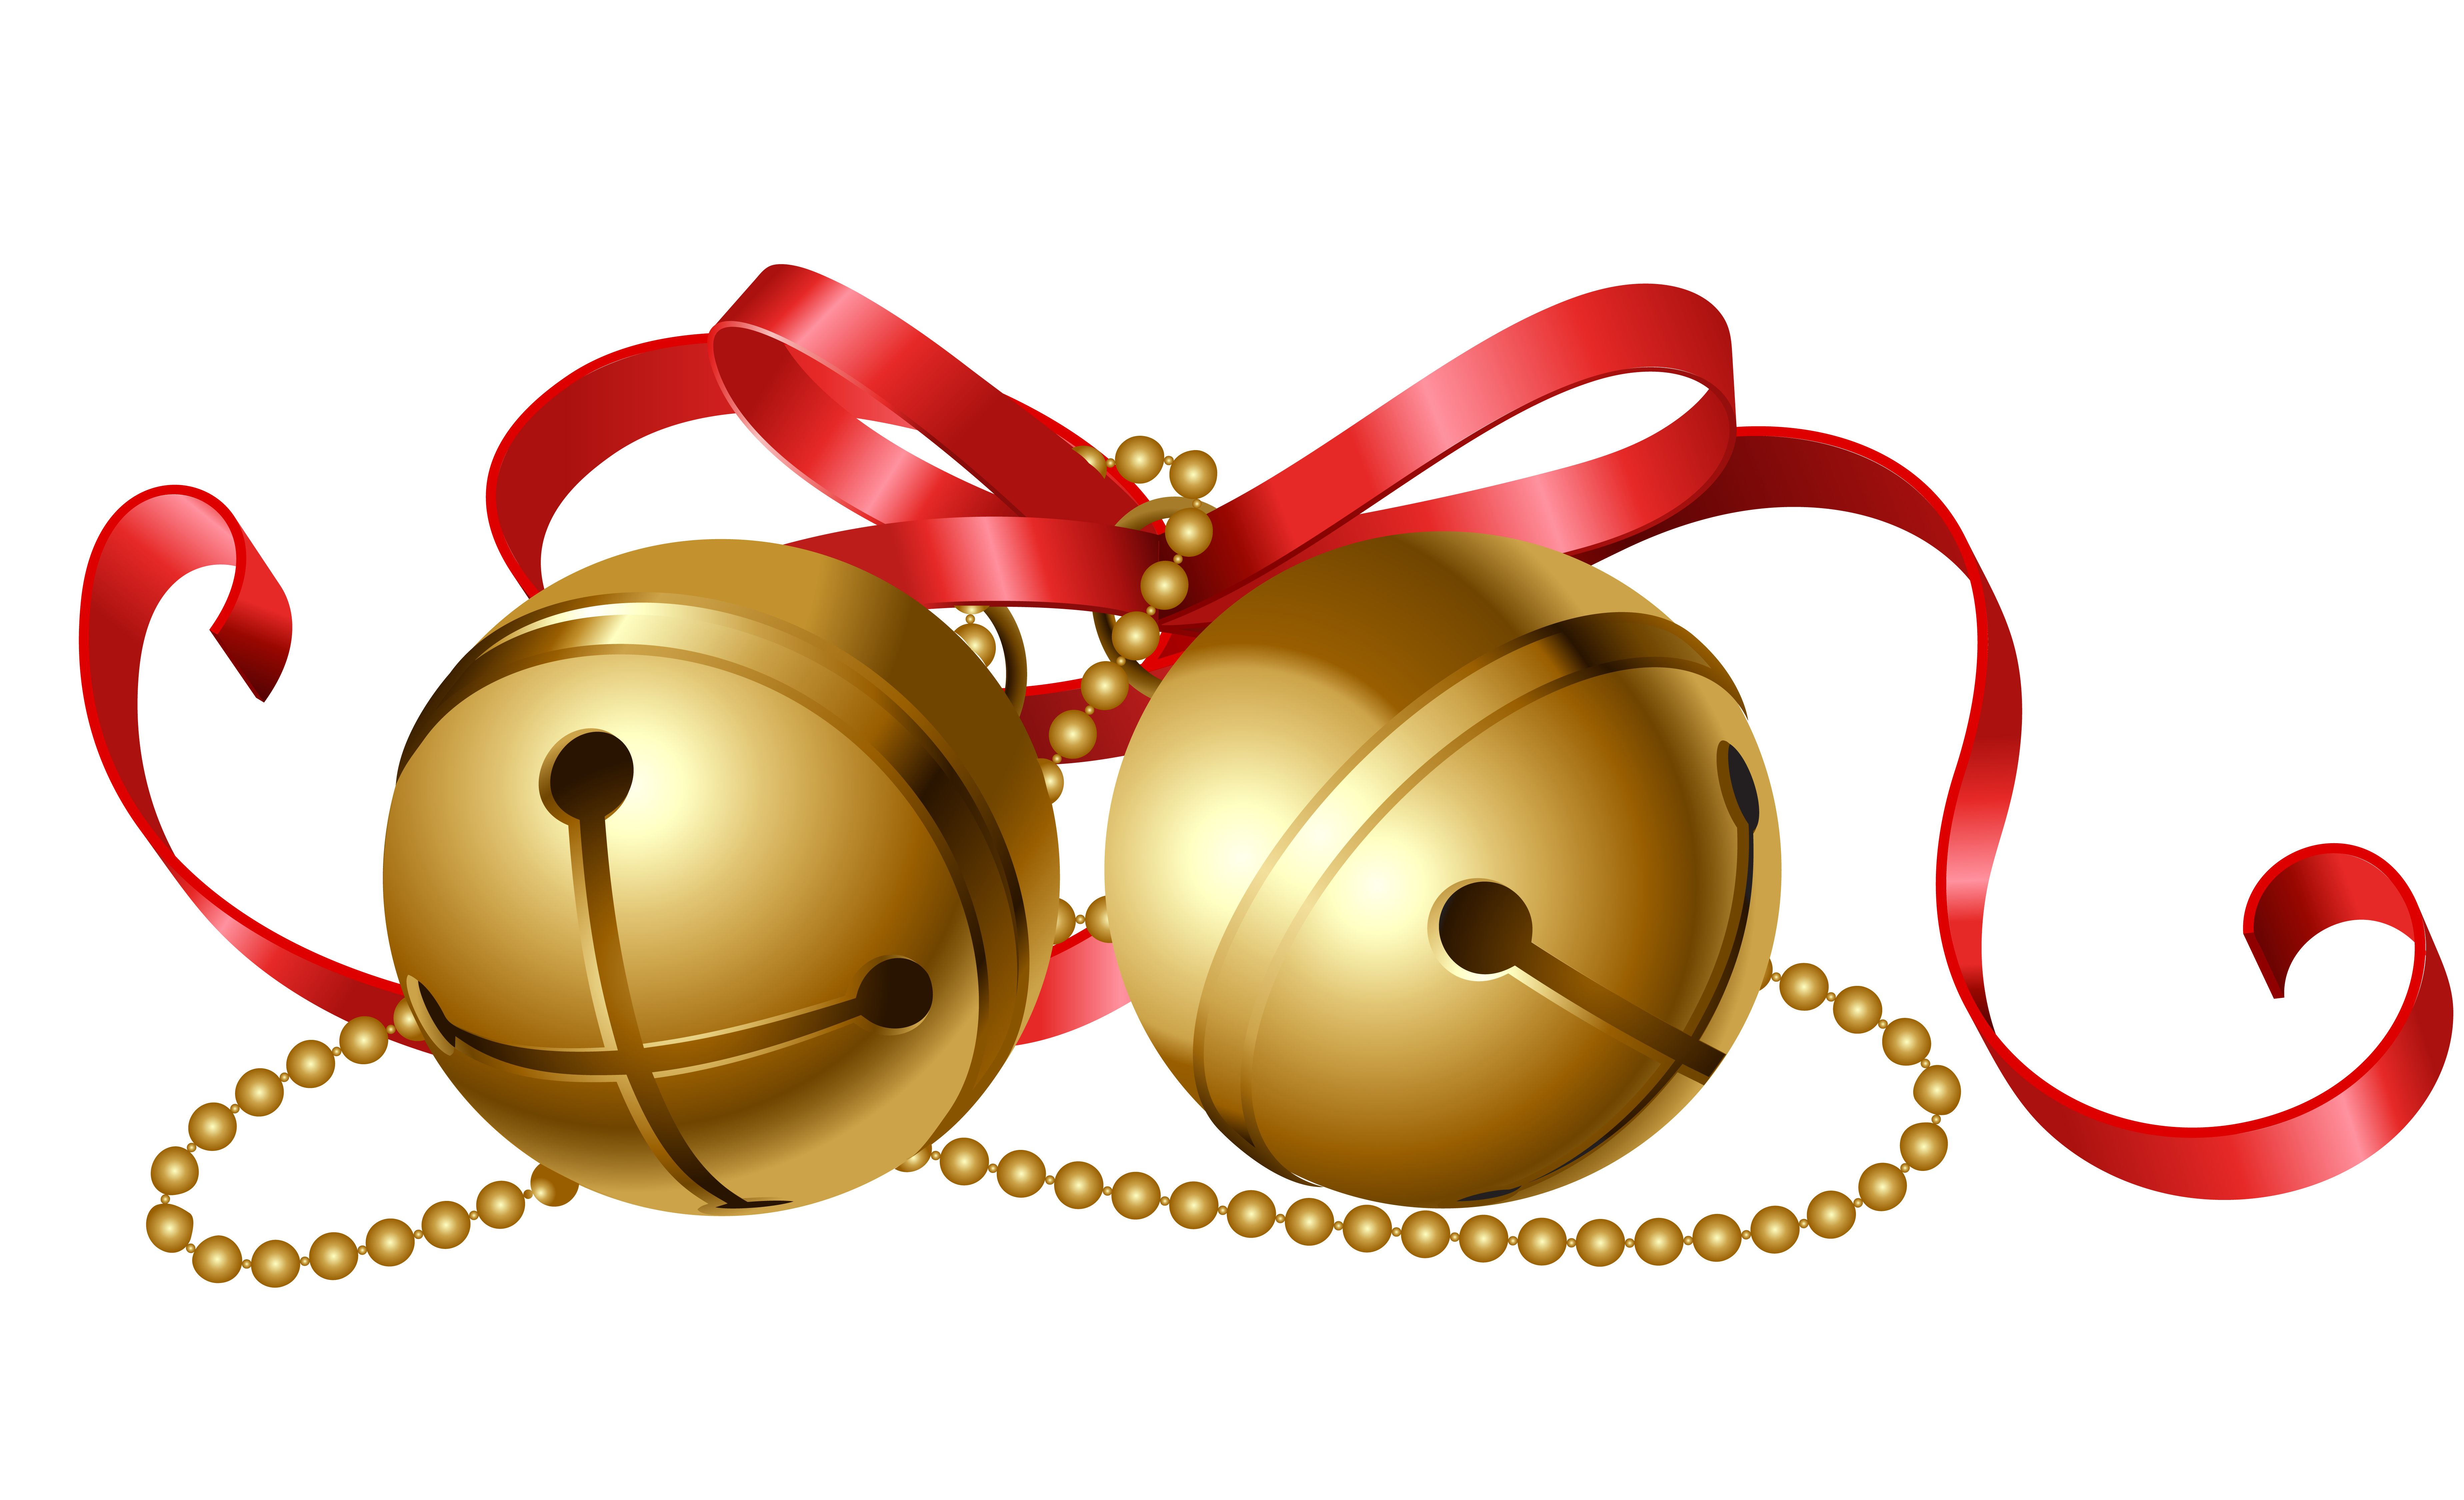 royalty free Jingle clipart. Sleigh bell clip art